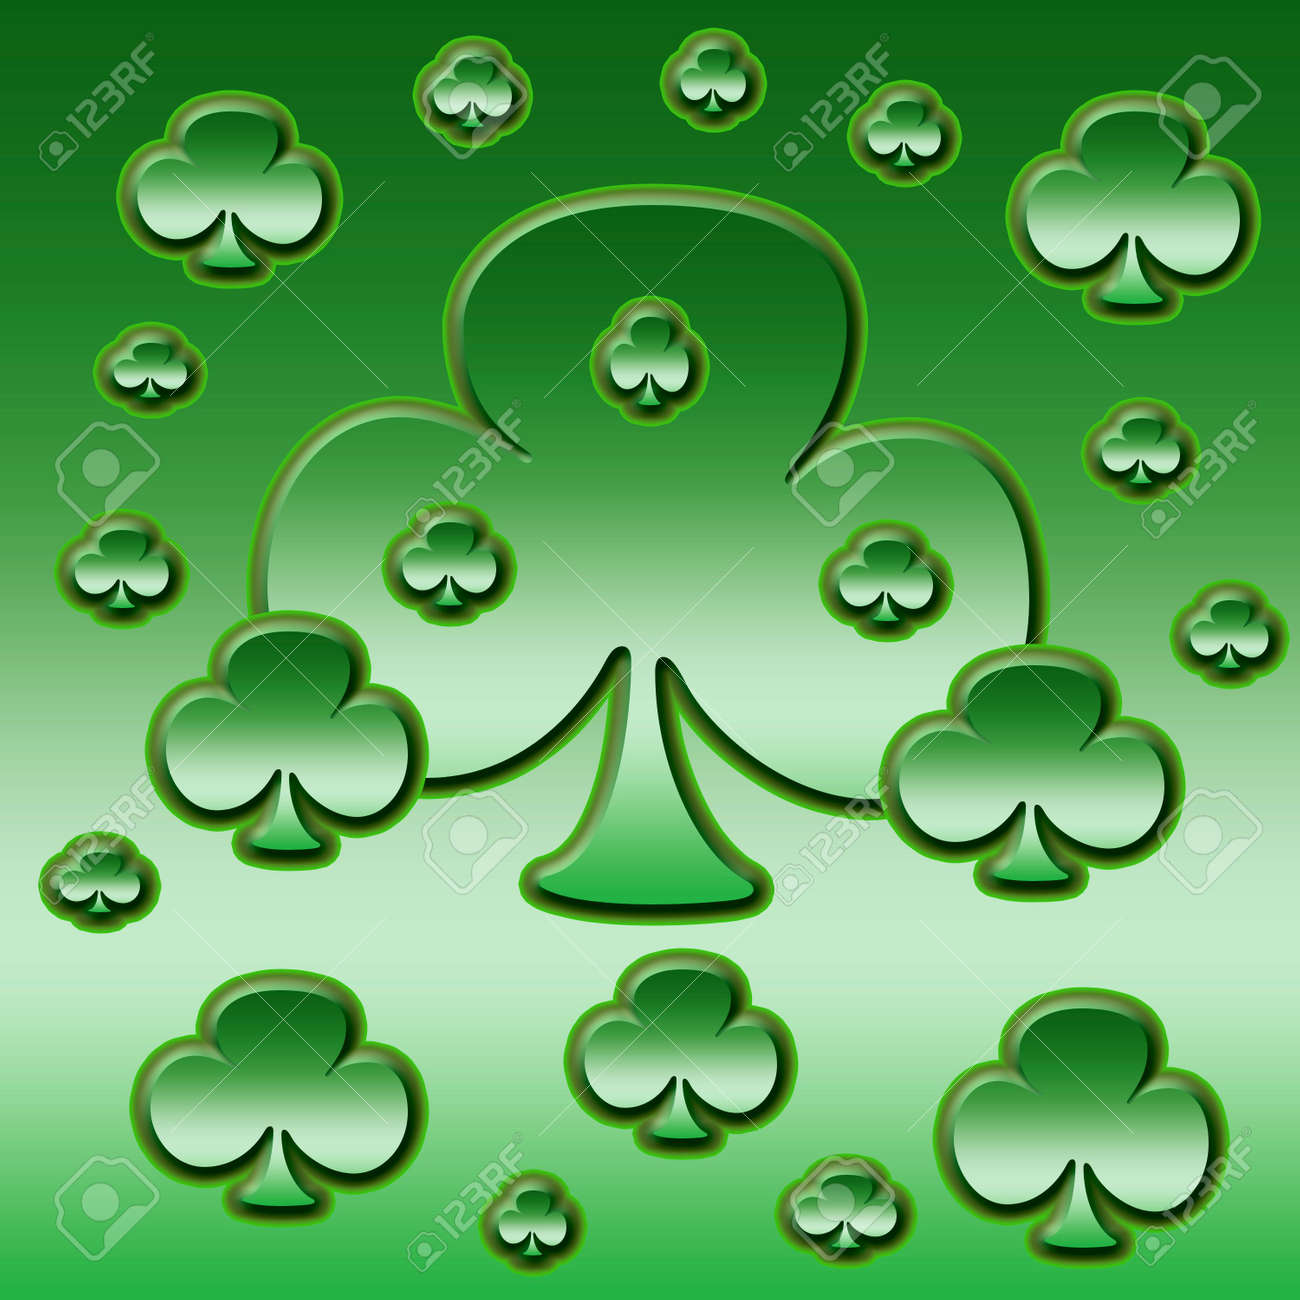 an illustration of a patch of clover Stock Photo - 781342